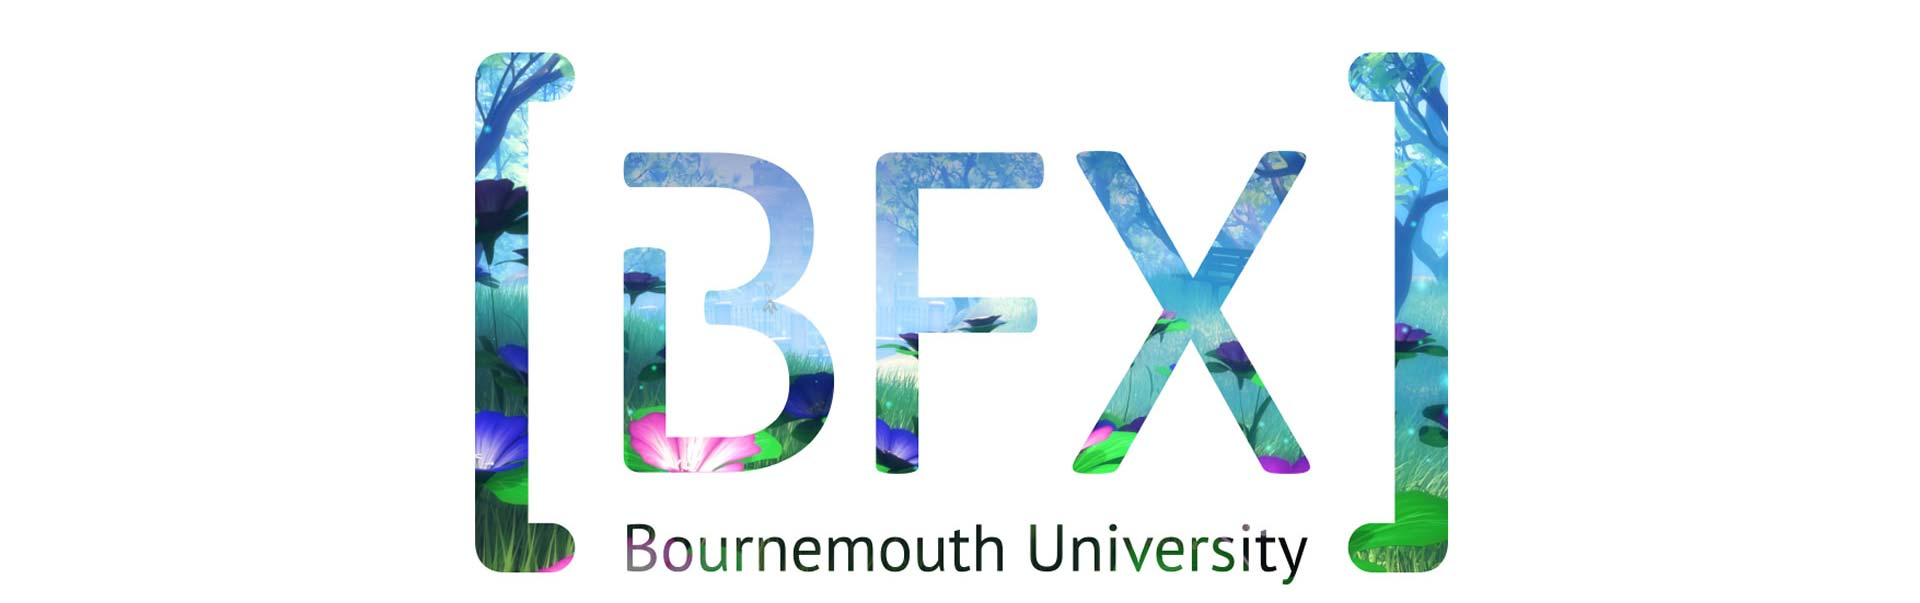 BFX Bournemouth University